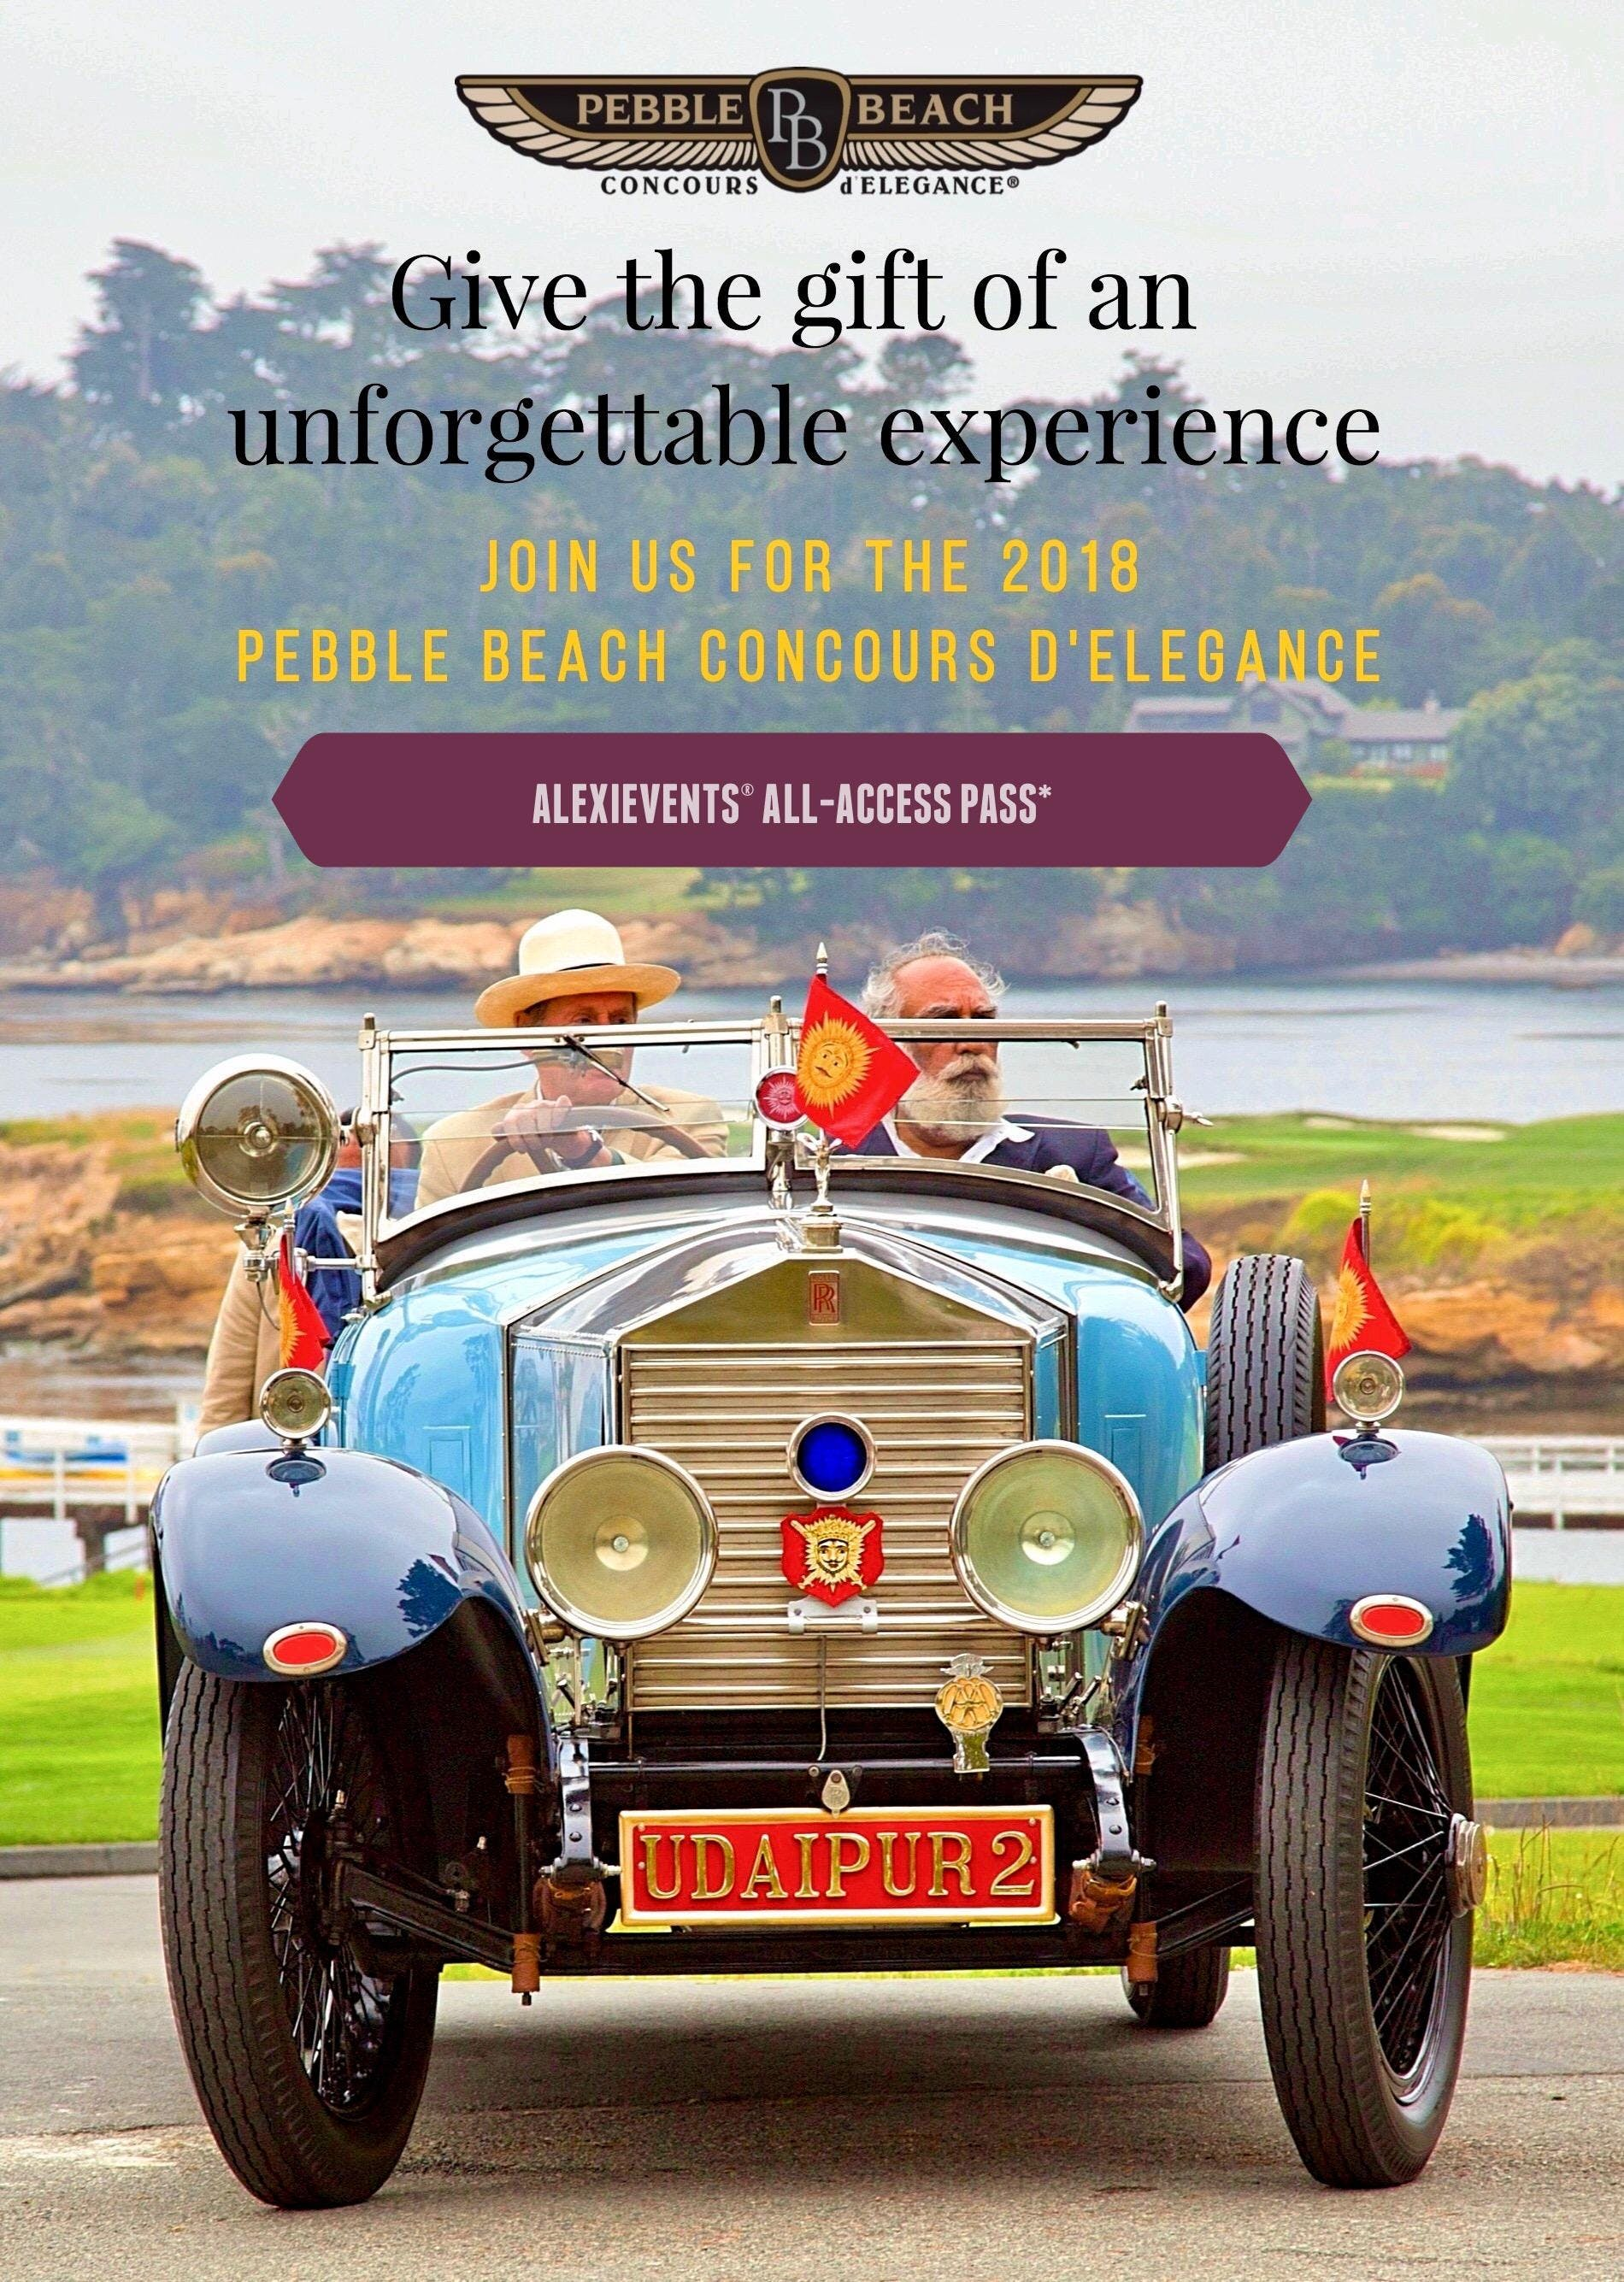 PEBBLE BEACH CONCOURS D ELEGANCE AUG - Pebble beach car show 2018